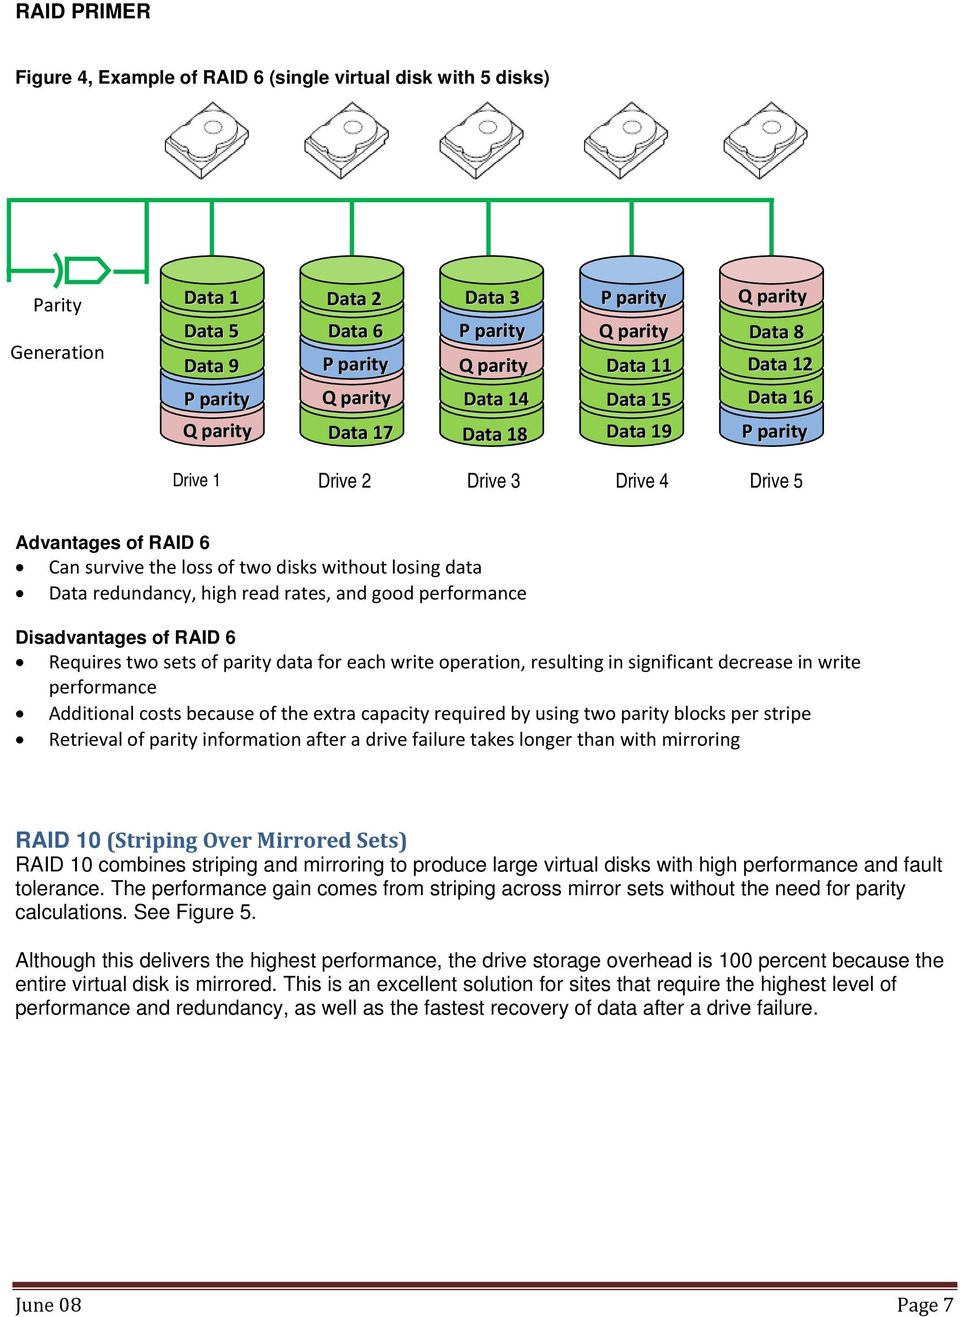 Data redundancy, high read rates, and good performance Disadvantages of RAID 6 Requires two sets of parity data for each write operation, resulting in significant decrease in write performance